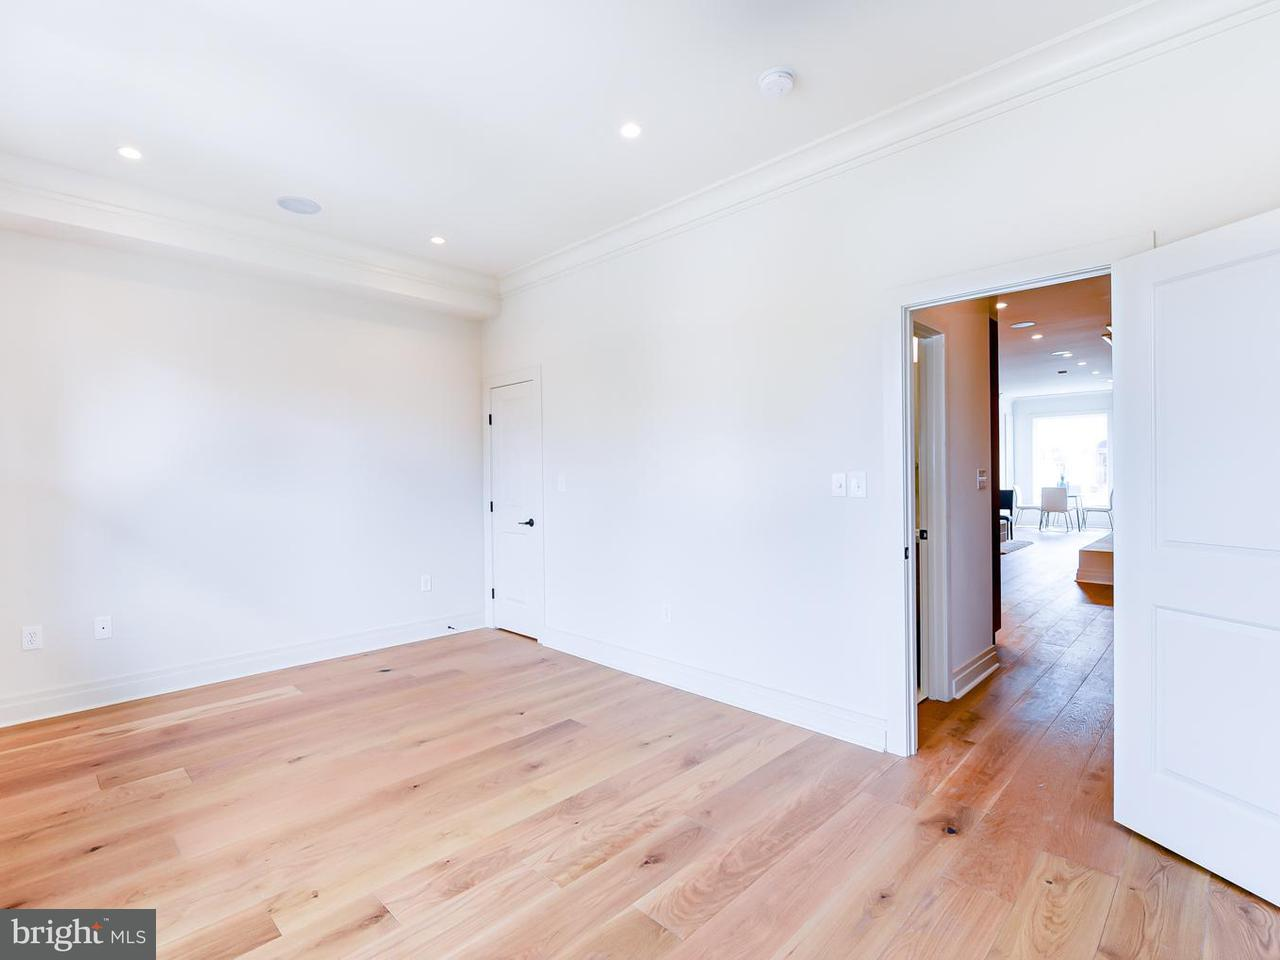 Additional photo for property listing at 64 U ST NW #1 64 U ST NW #1 Washington, District Of Columbia 20001 United States